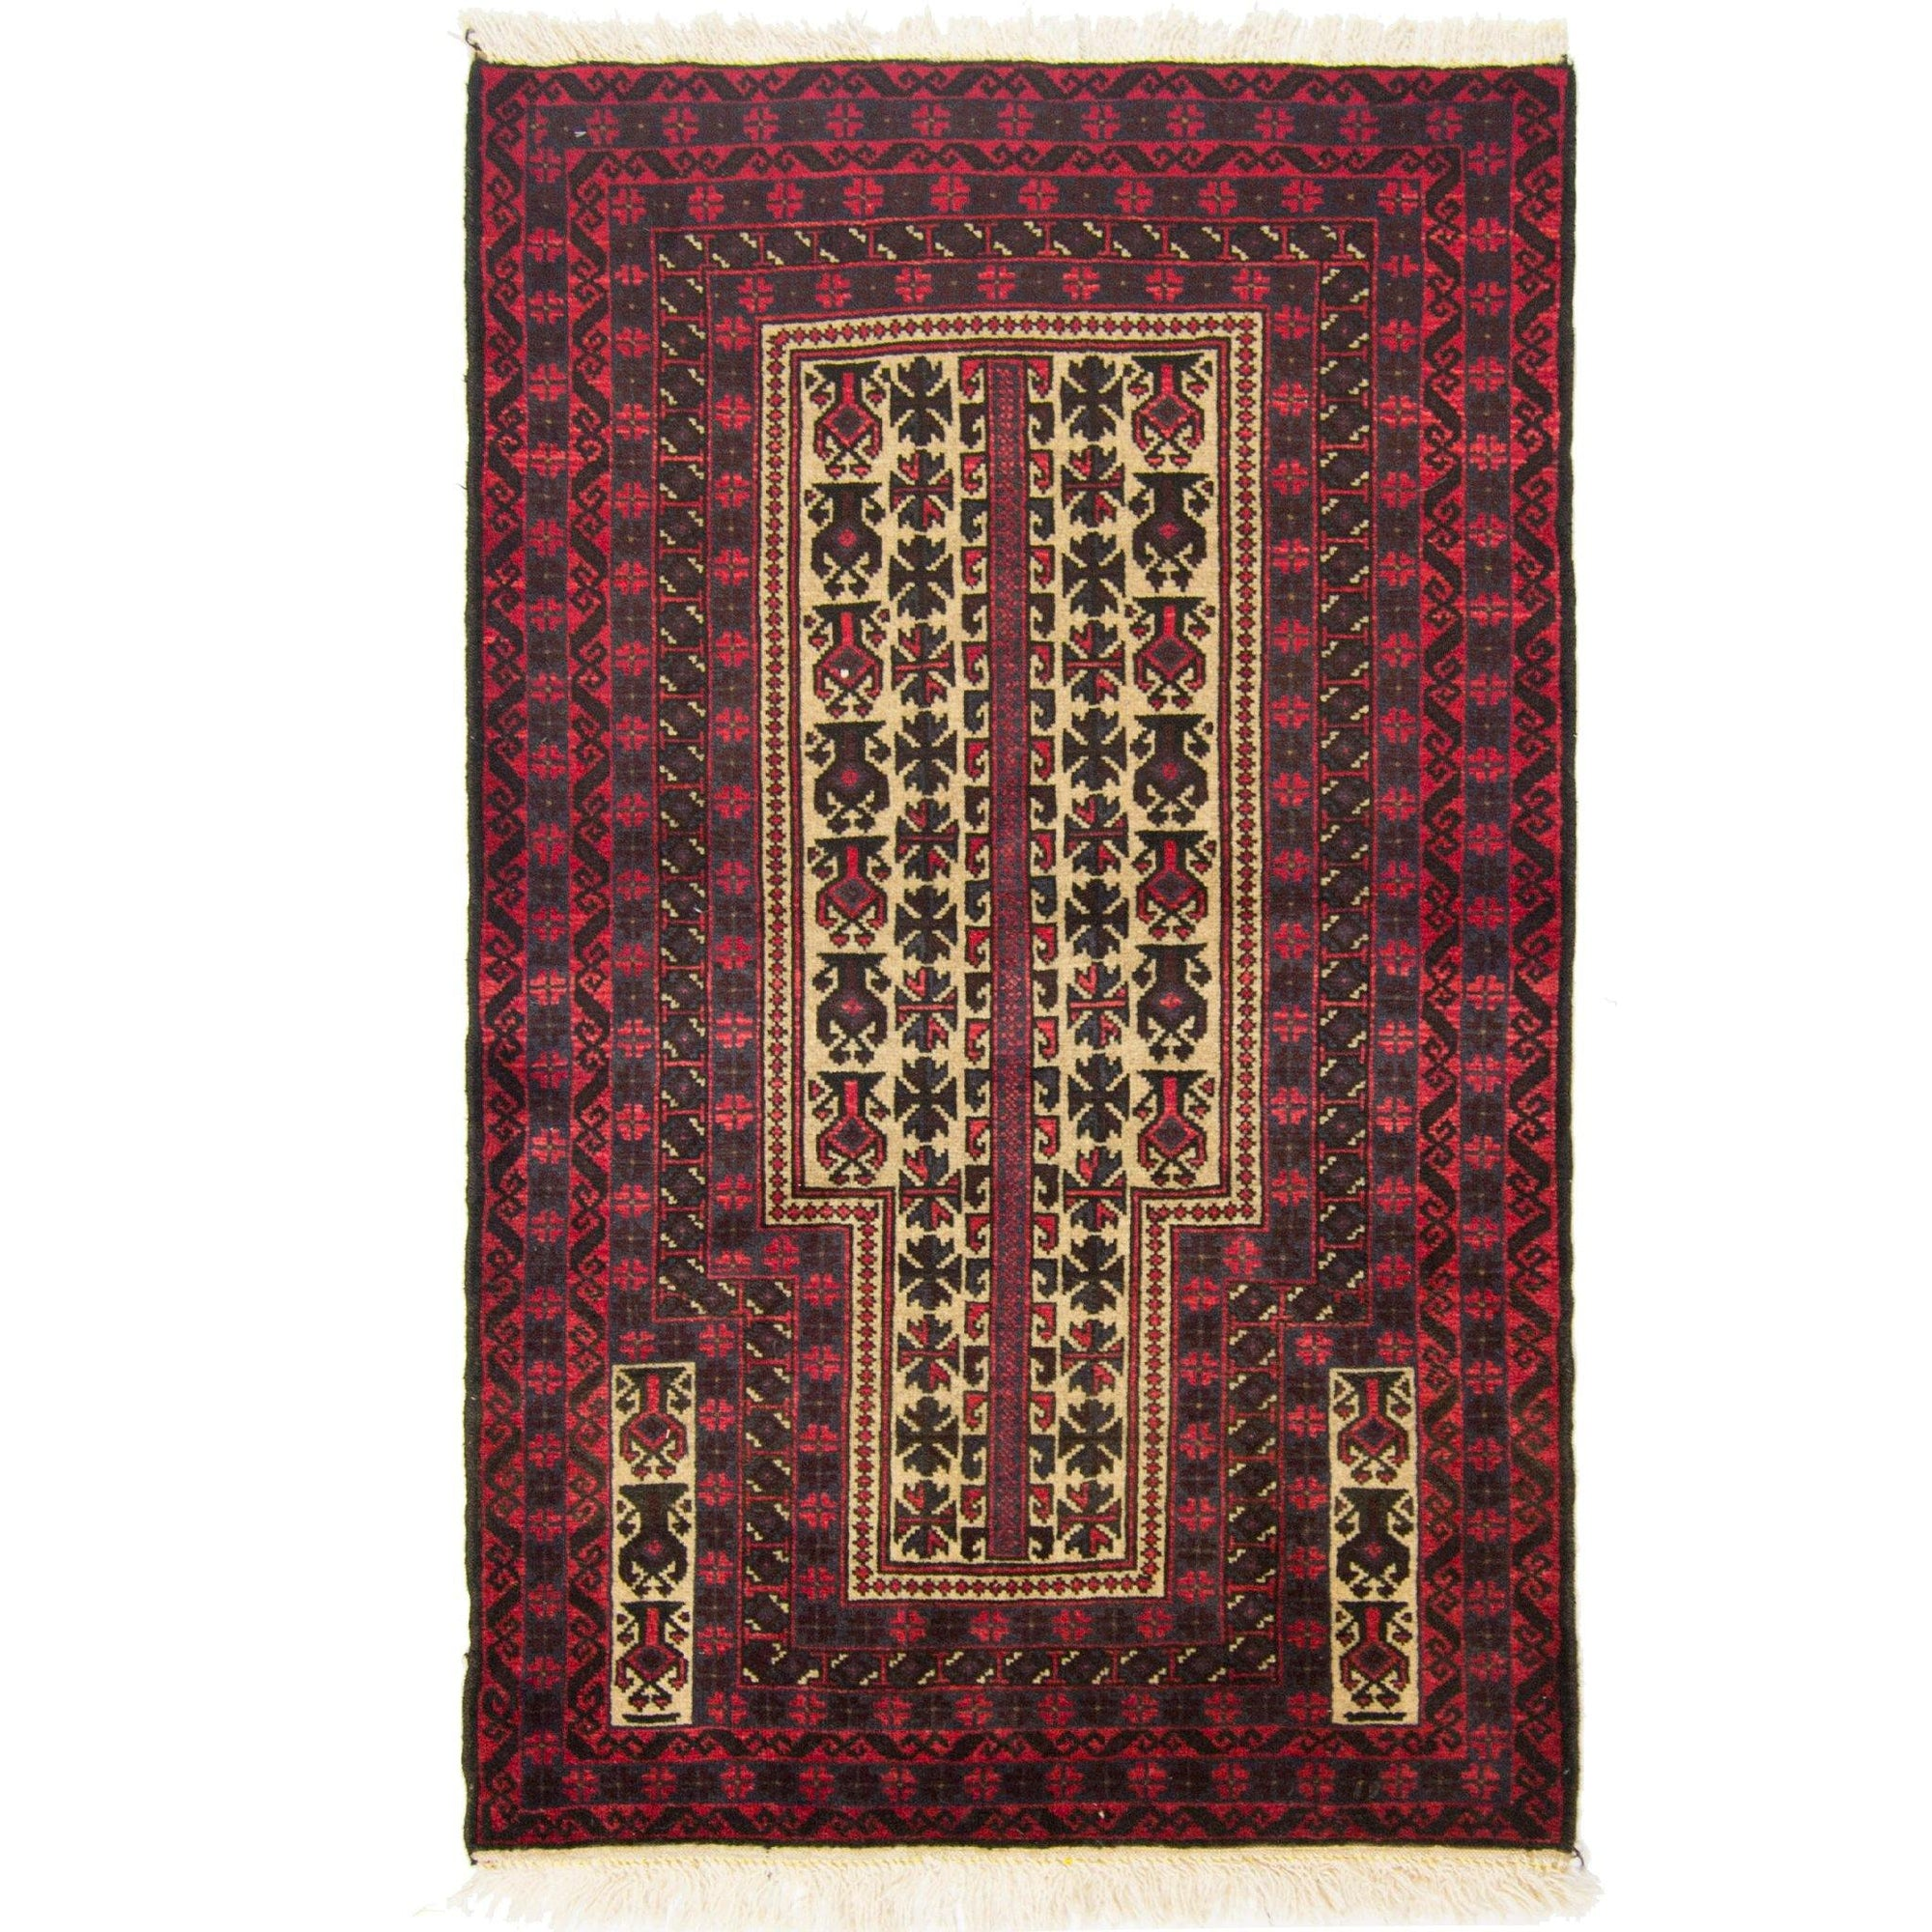 Fine Hand-knotted Persian Wool Baluchi Rug  85cm x 137cm Persian-Rug | House-of-Haghi | NewMarket | Auckland | NZ | Handmade Persian Rugs | Hand Knotted Persian Rugs